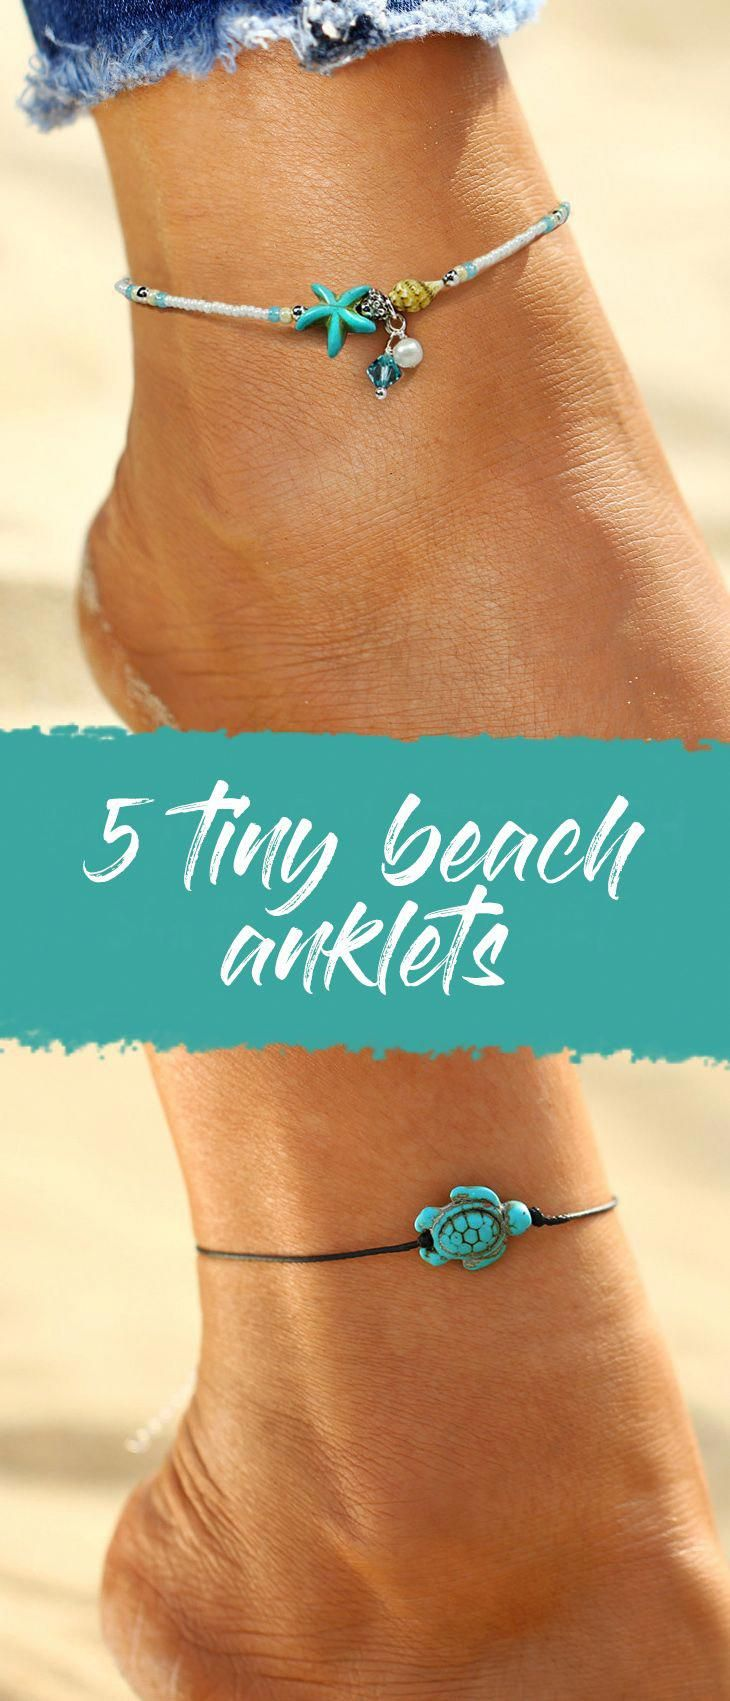 2a96f96a14d1ca 5 tiny beach anklets on Passport Ocean - A must have for summer 2018, a boho  turtle anklet , a boho starfish anklet, summer vibes  #WomanankletsWorthPinning